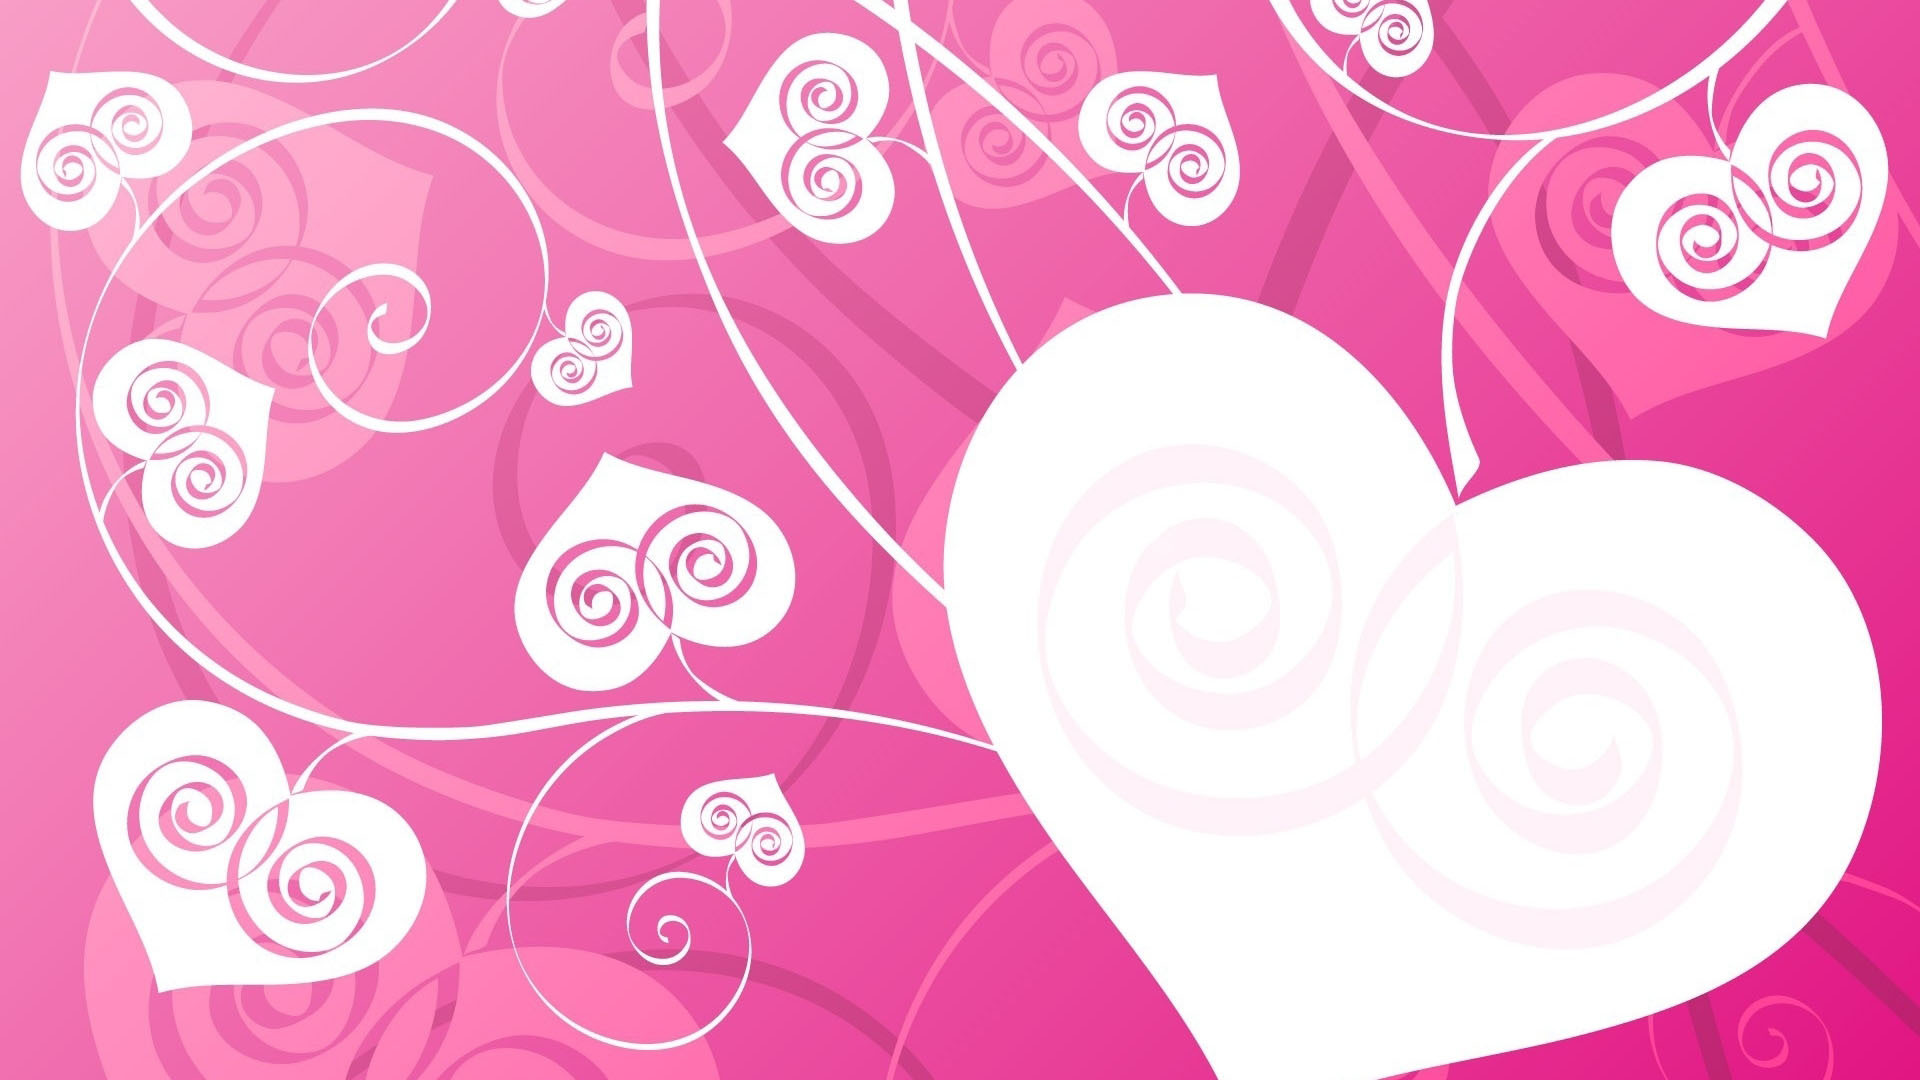 Pink Abstract Widescreen